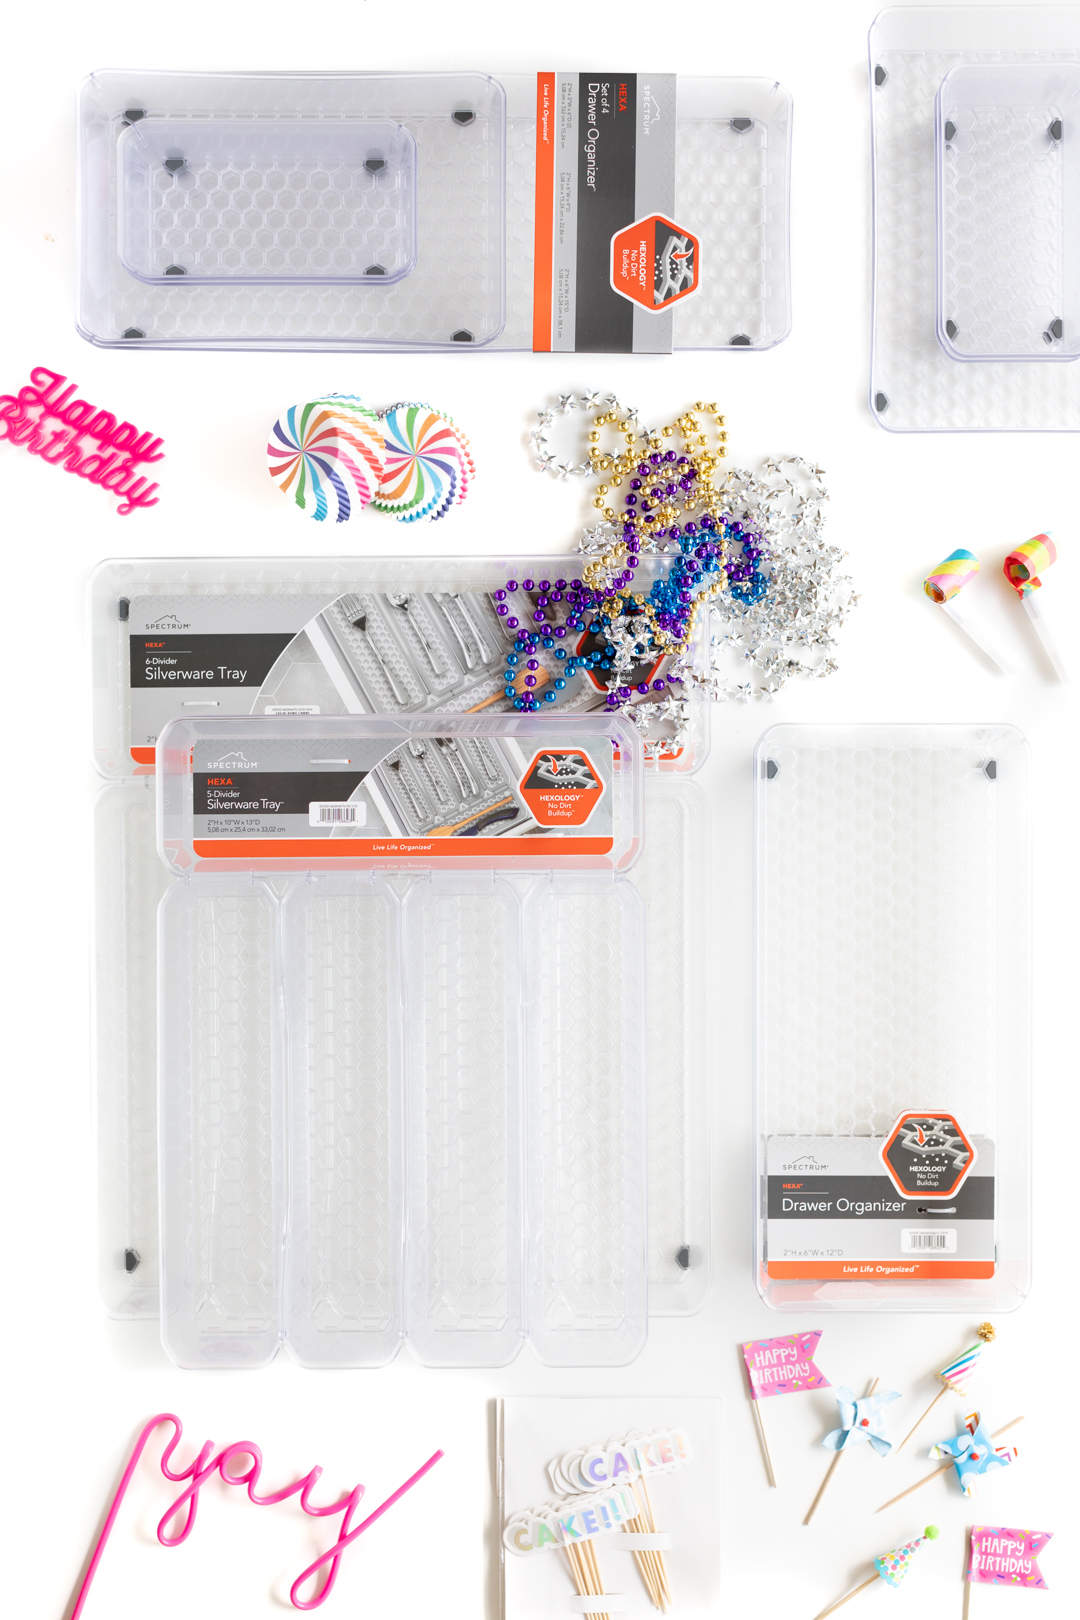 HEXA organizers in a variety of sizes.